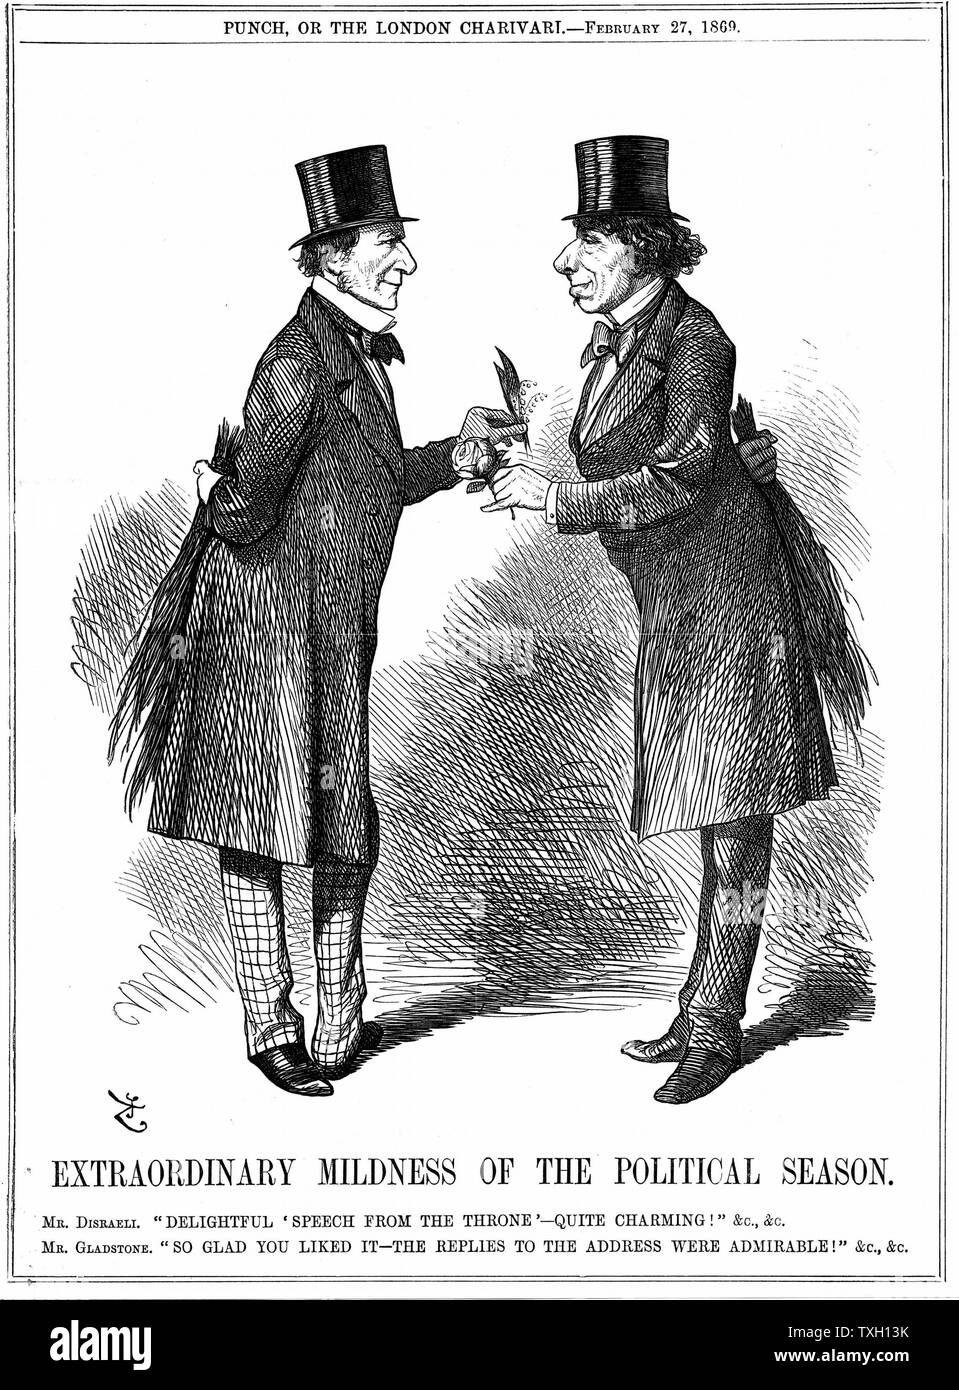 'Extraordinary Mildness of the Political Season': Disraeli congratulating Gladstone on Sovereign's speech at Opening of Parliament. Both have a birch behind them to start beating the other as soon as the Session gets underway.  John Tenniel cartoon from 'Punch', 27 February 1869, making fun of the animosity between the two men. Engraving - Stock Image